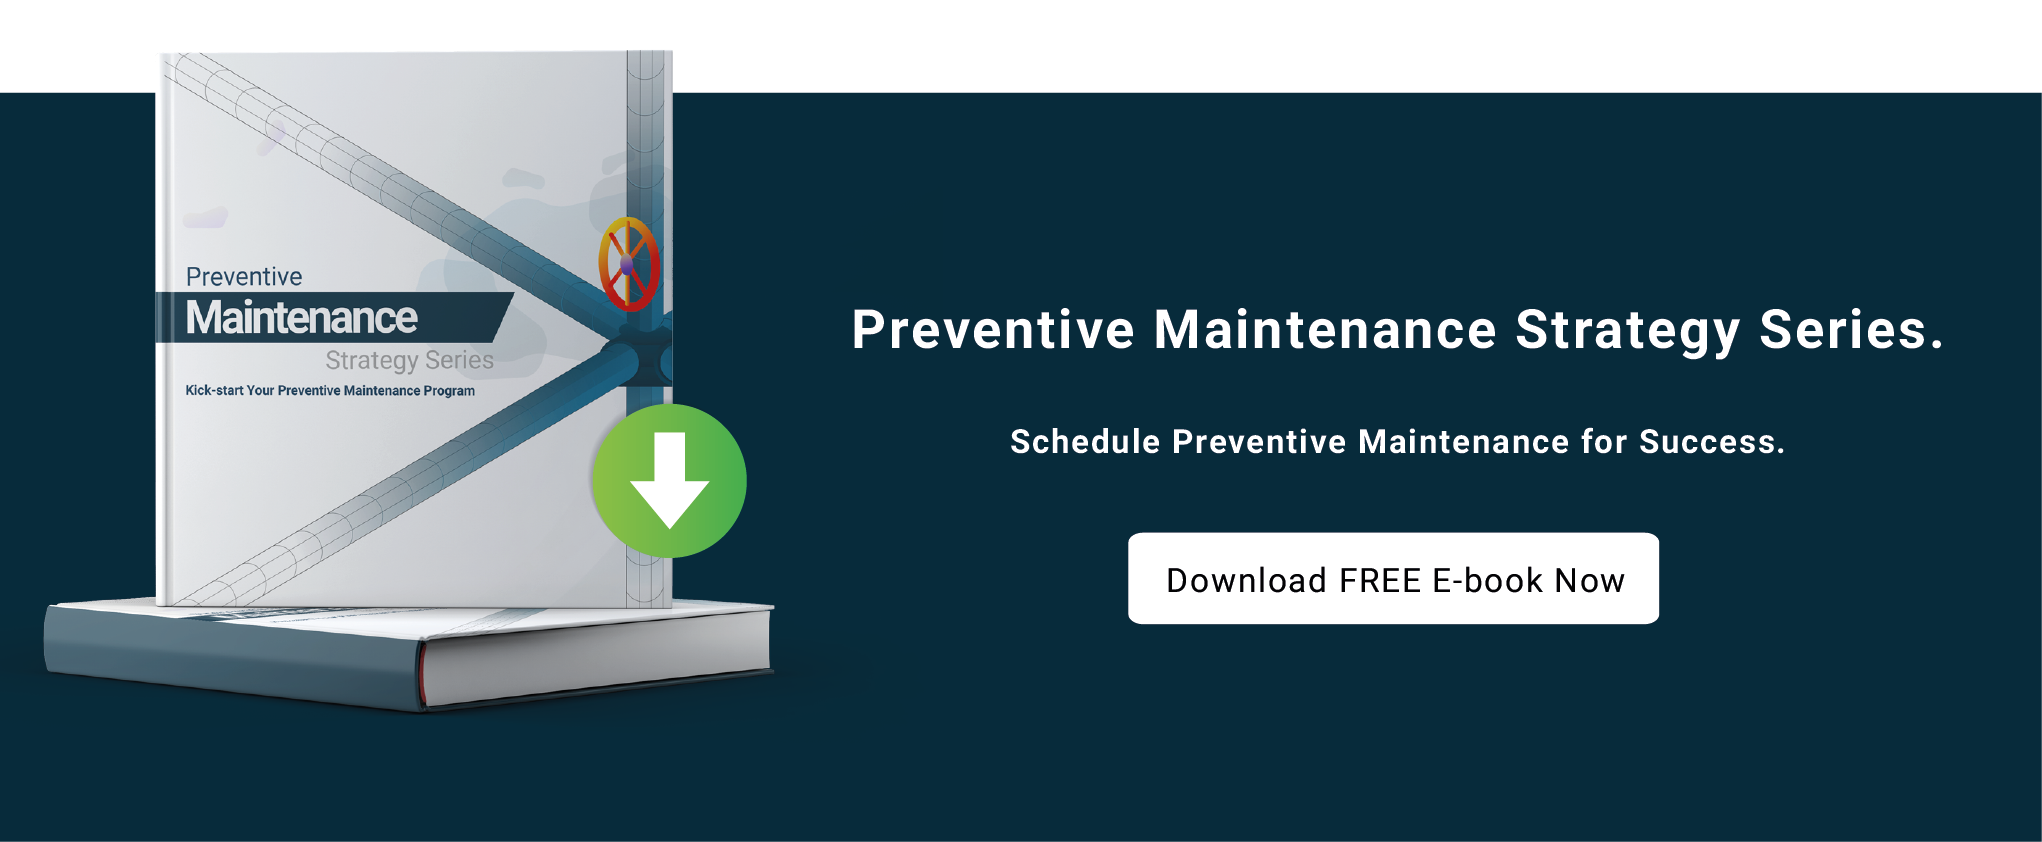 Preventive Maintenance Schedule E-book